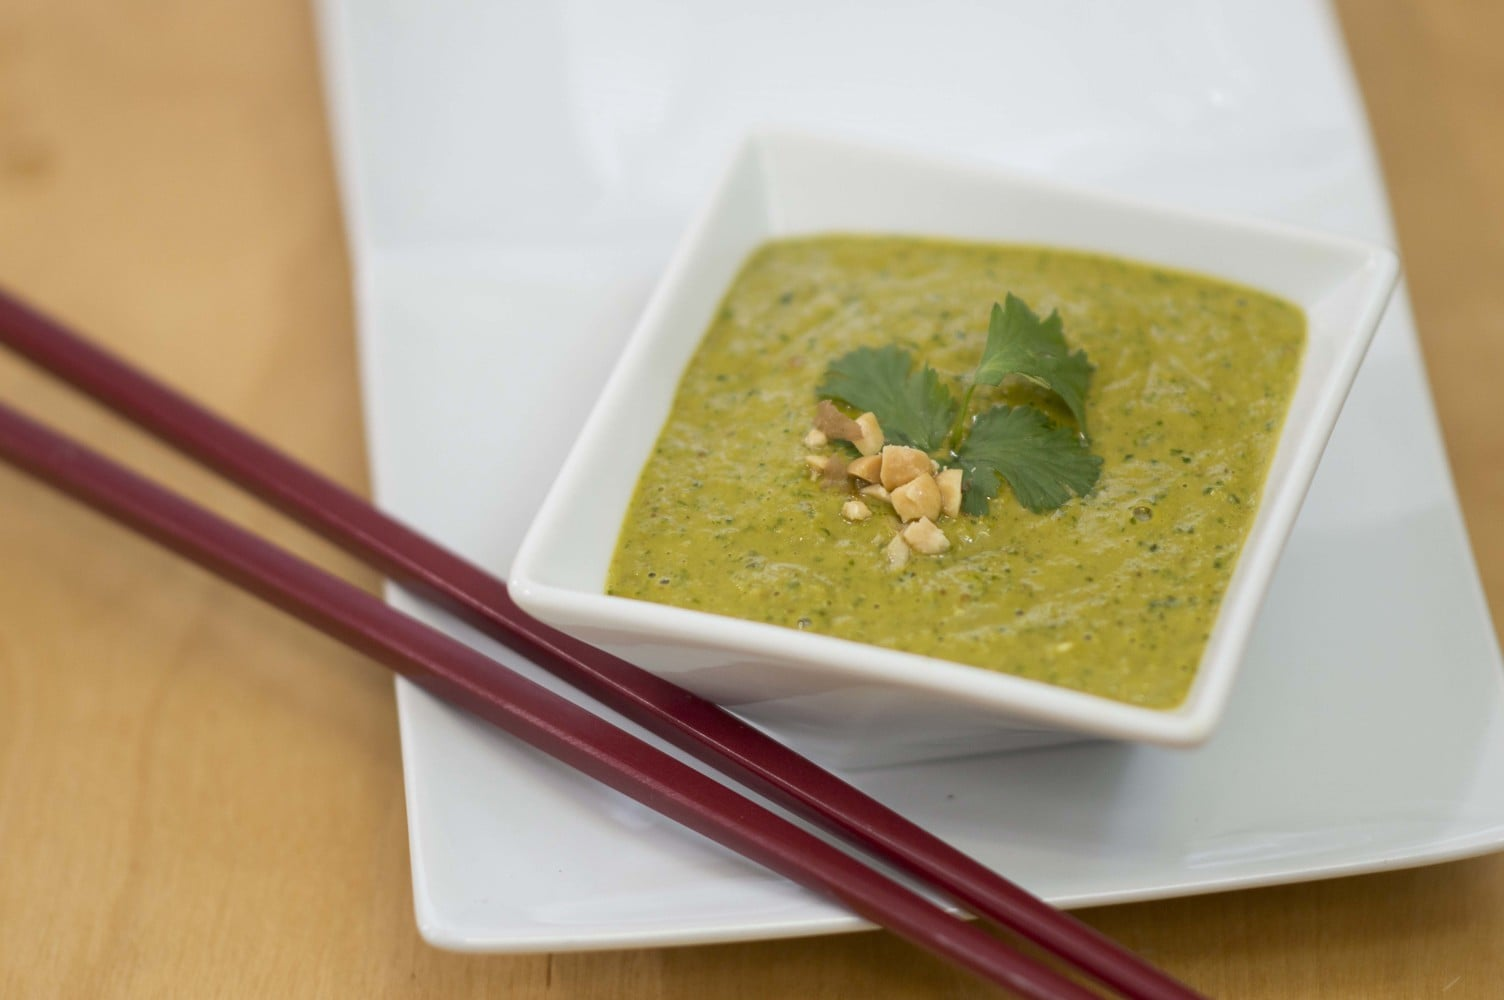 The Thai Peanut Sauce prepared and ready to eat